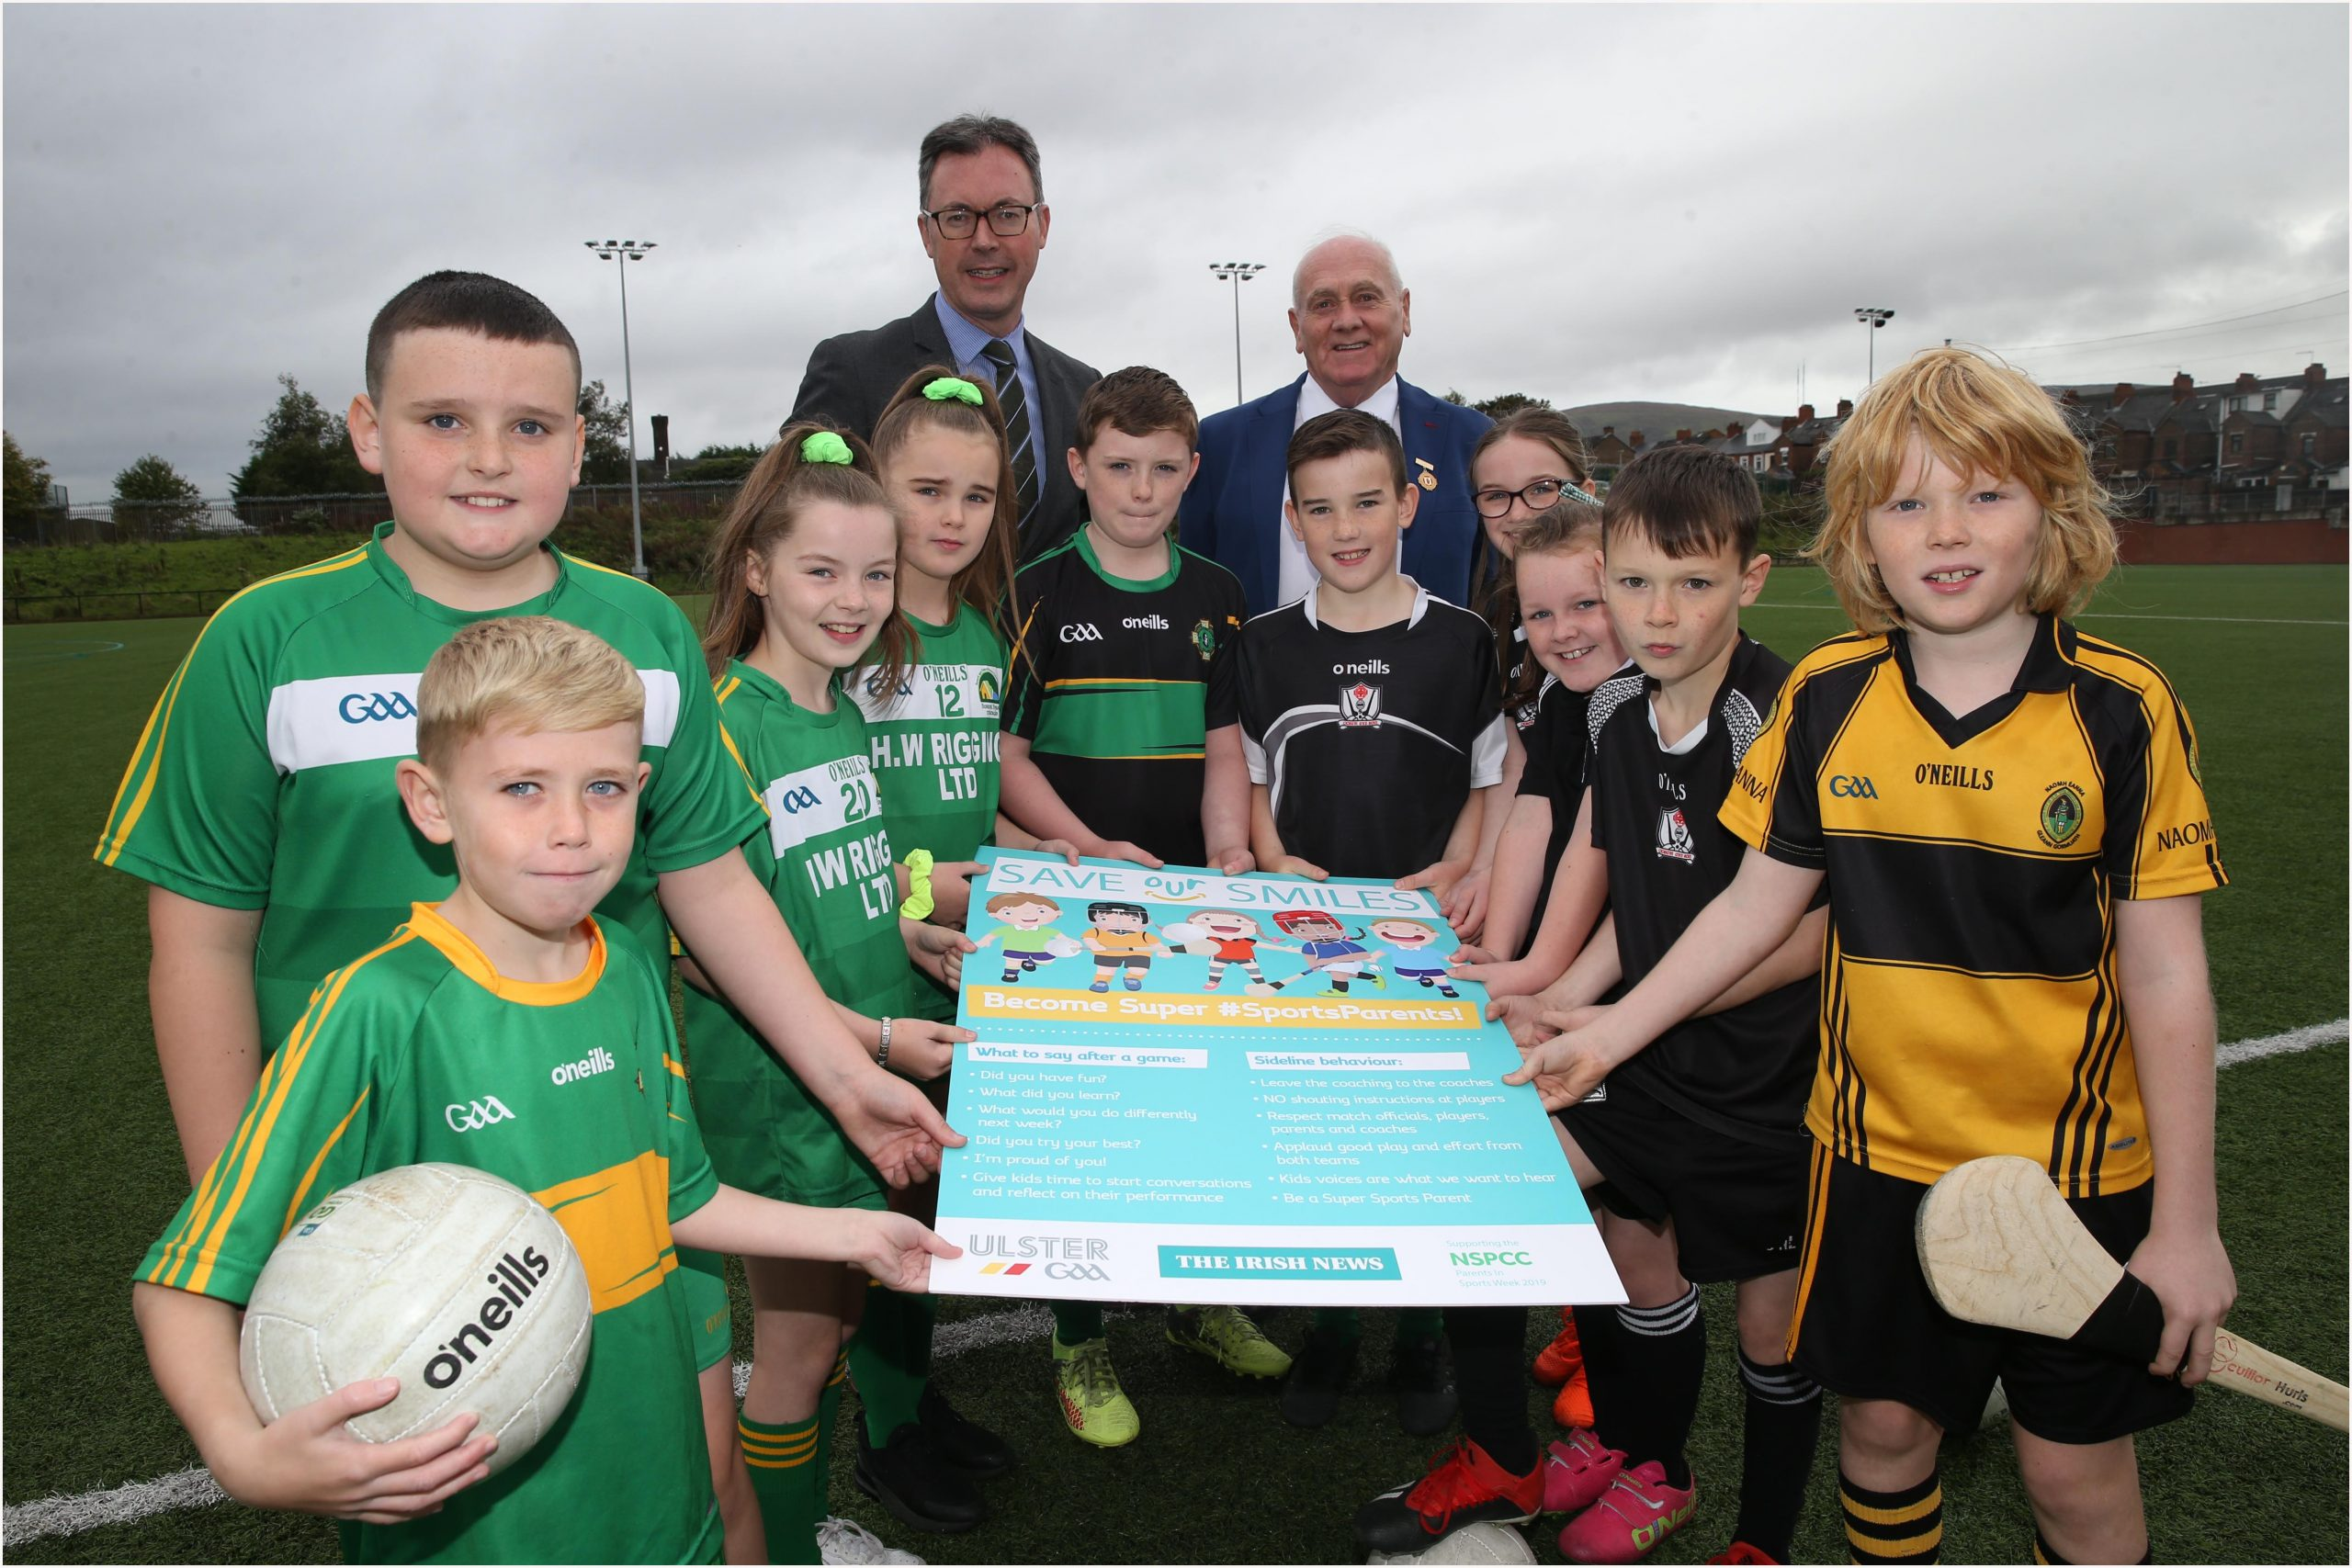 Parents in Sport Week 2019 – Save our Smiles